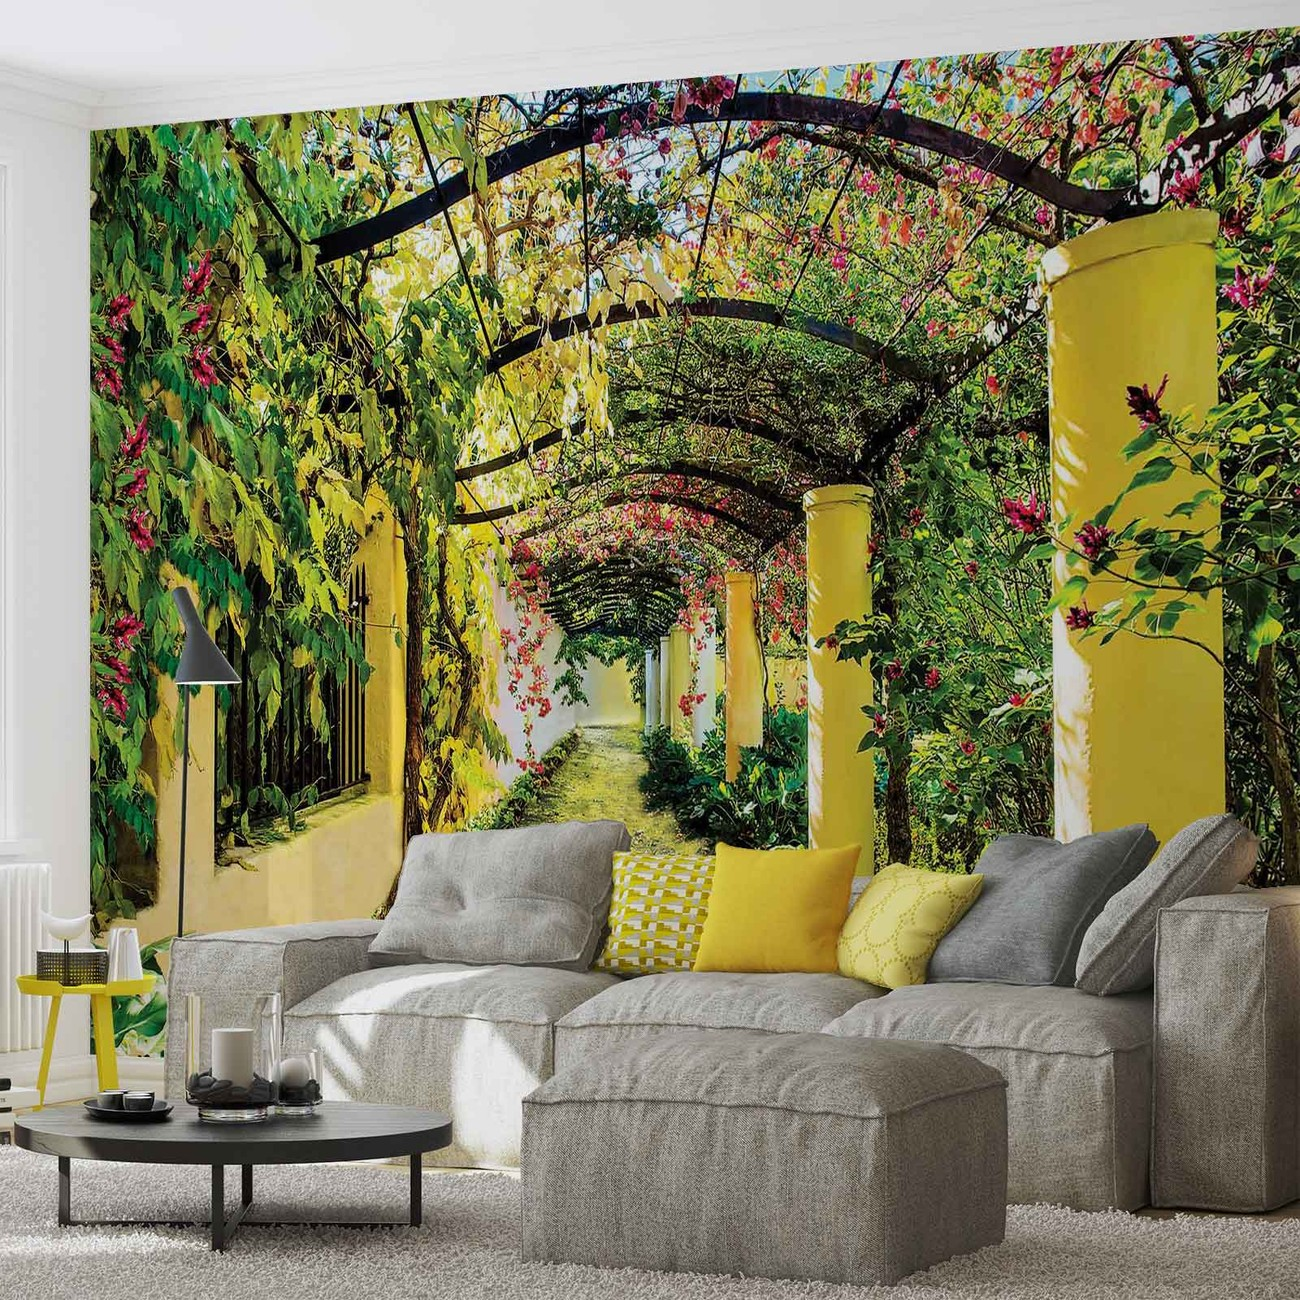 Flowers floral garden wall paper mural buy at europosters for Mural garden